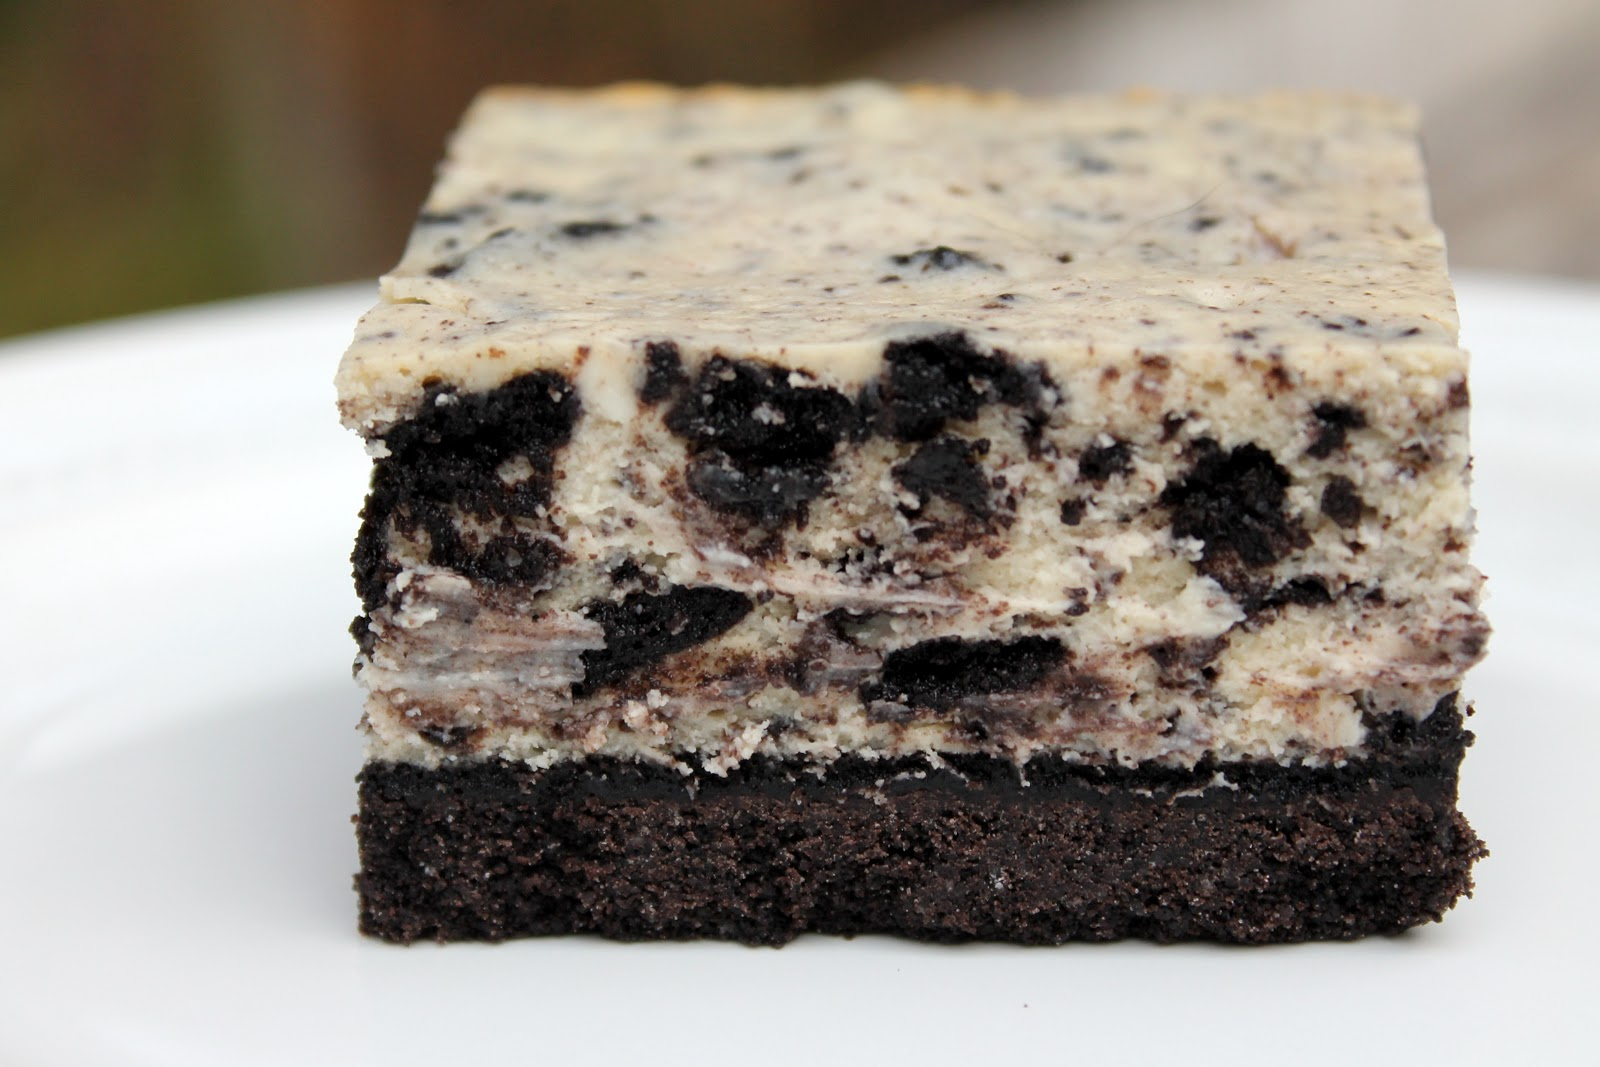 Oreo Cooki Ice Cream Cake